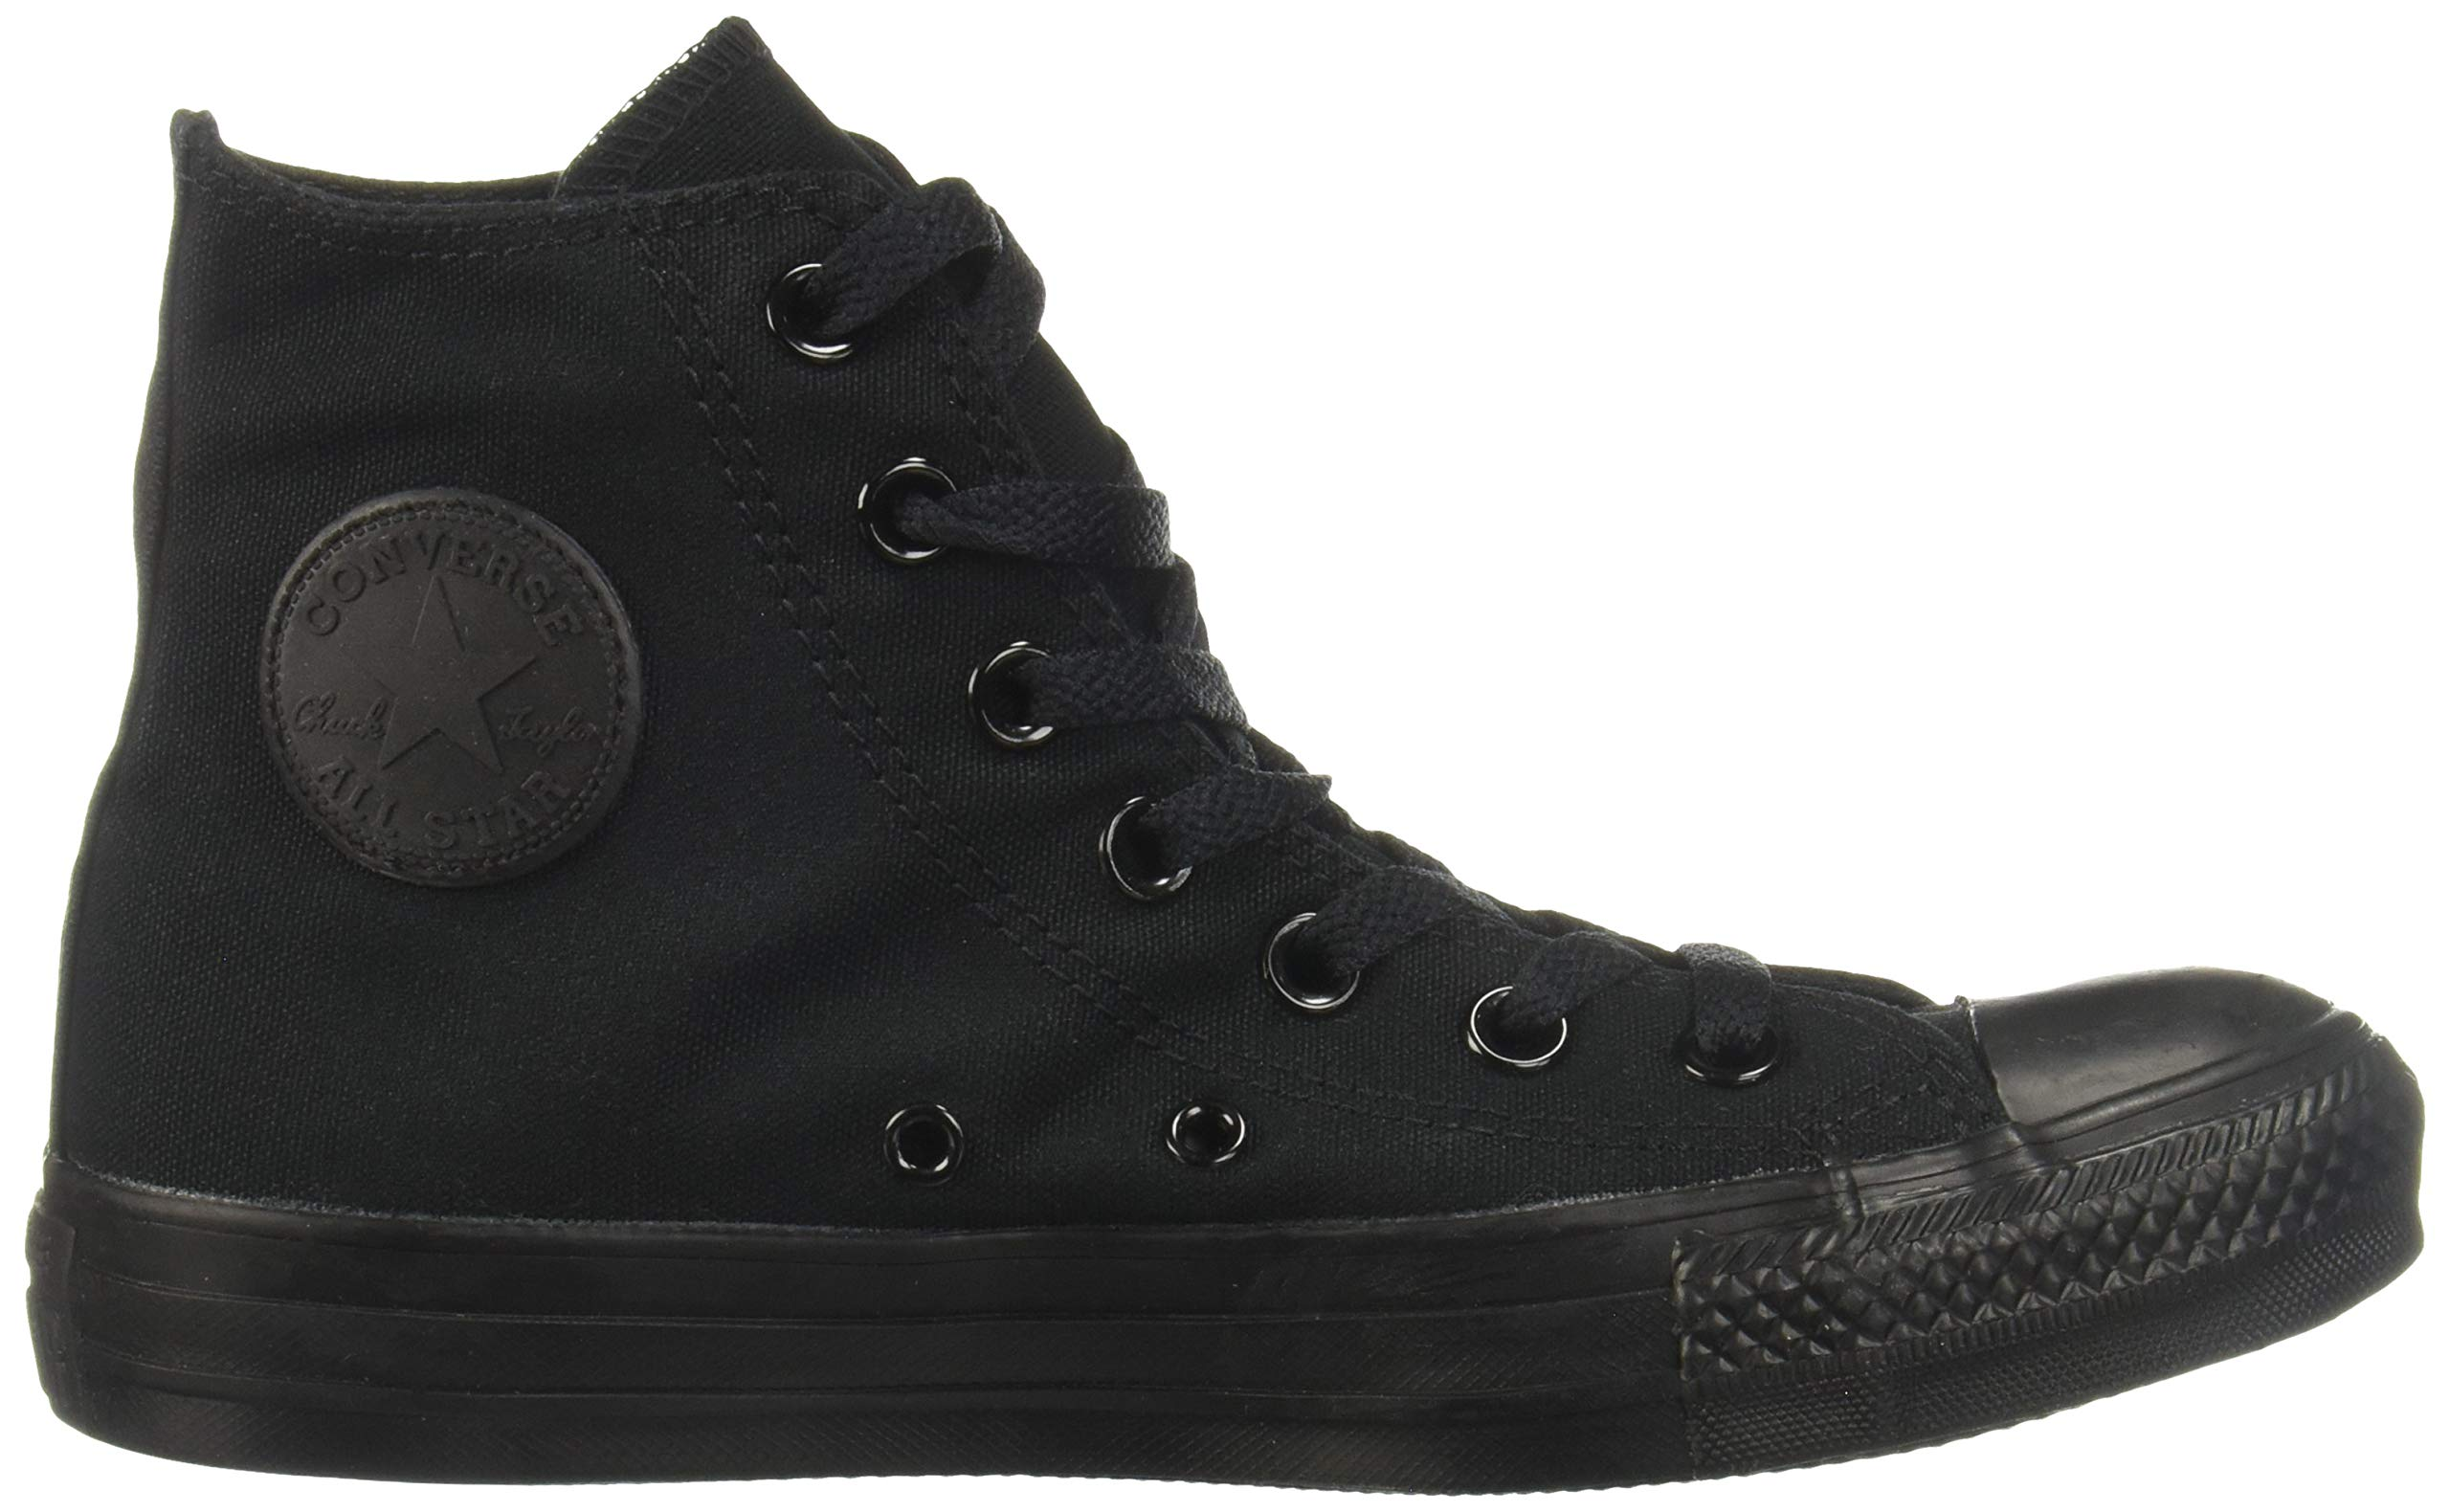 Converse Chuck Taylor All Star High Top Black/Black 9 D(M) US by Converse (Image #7)